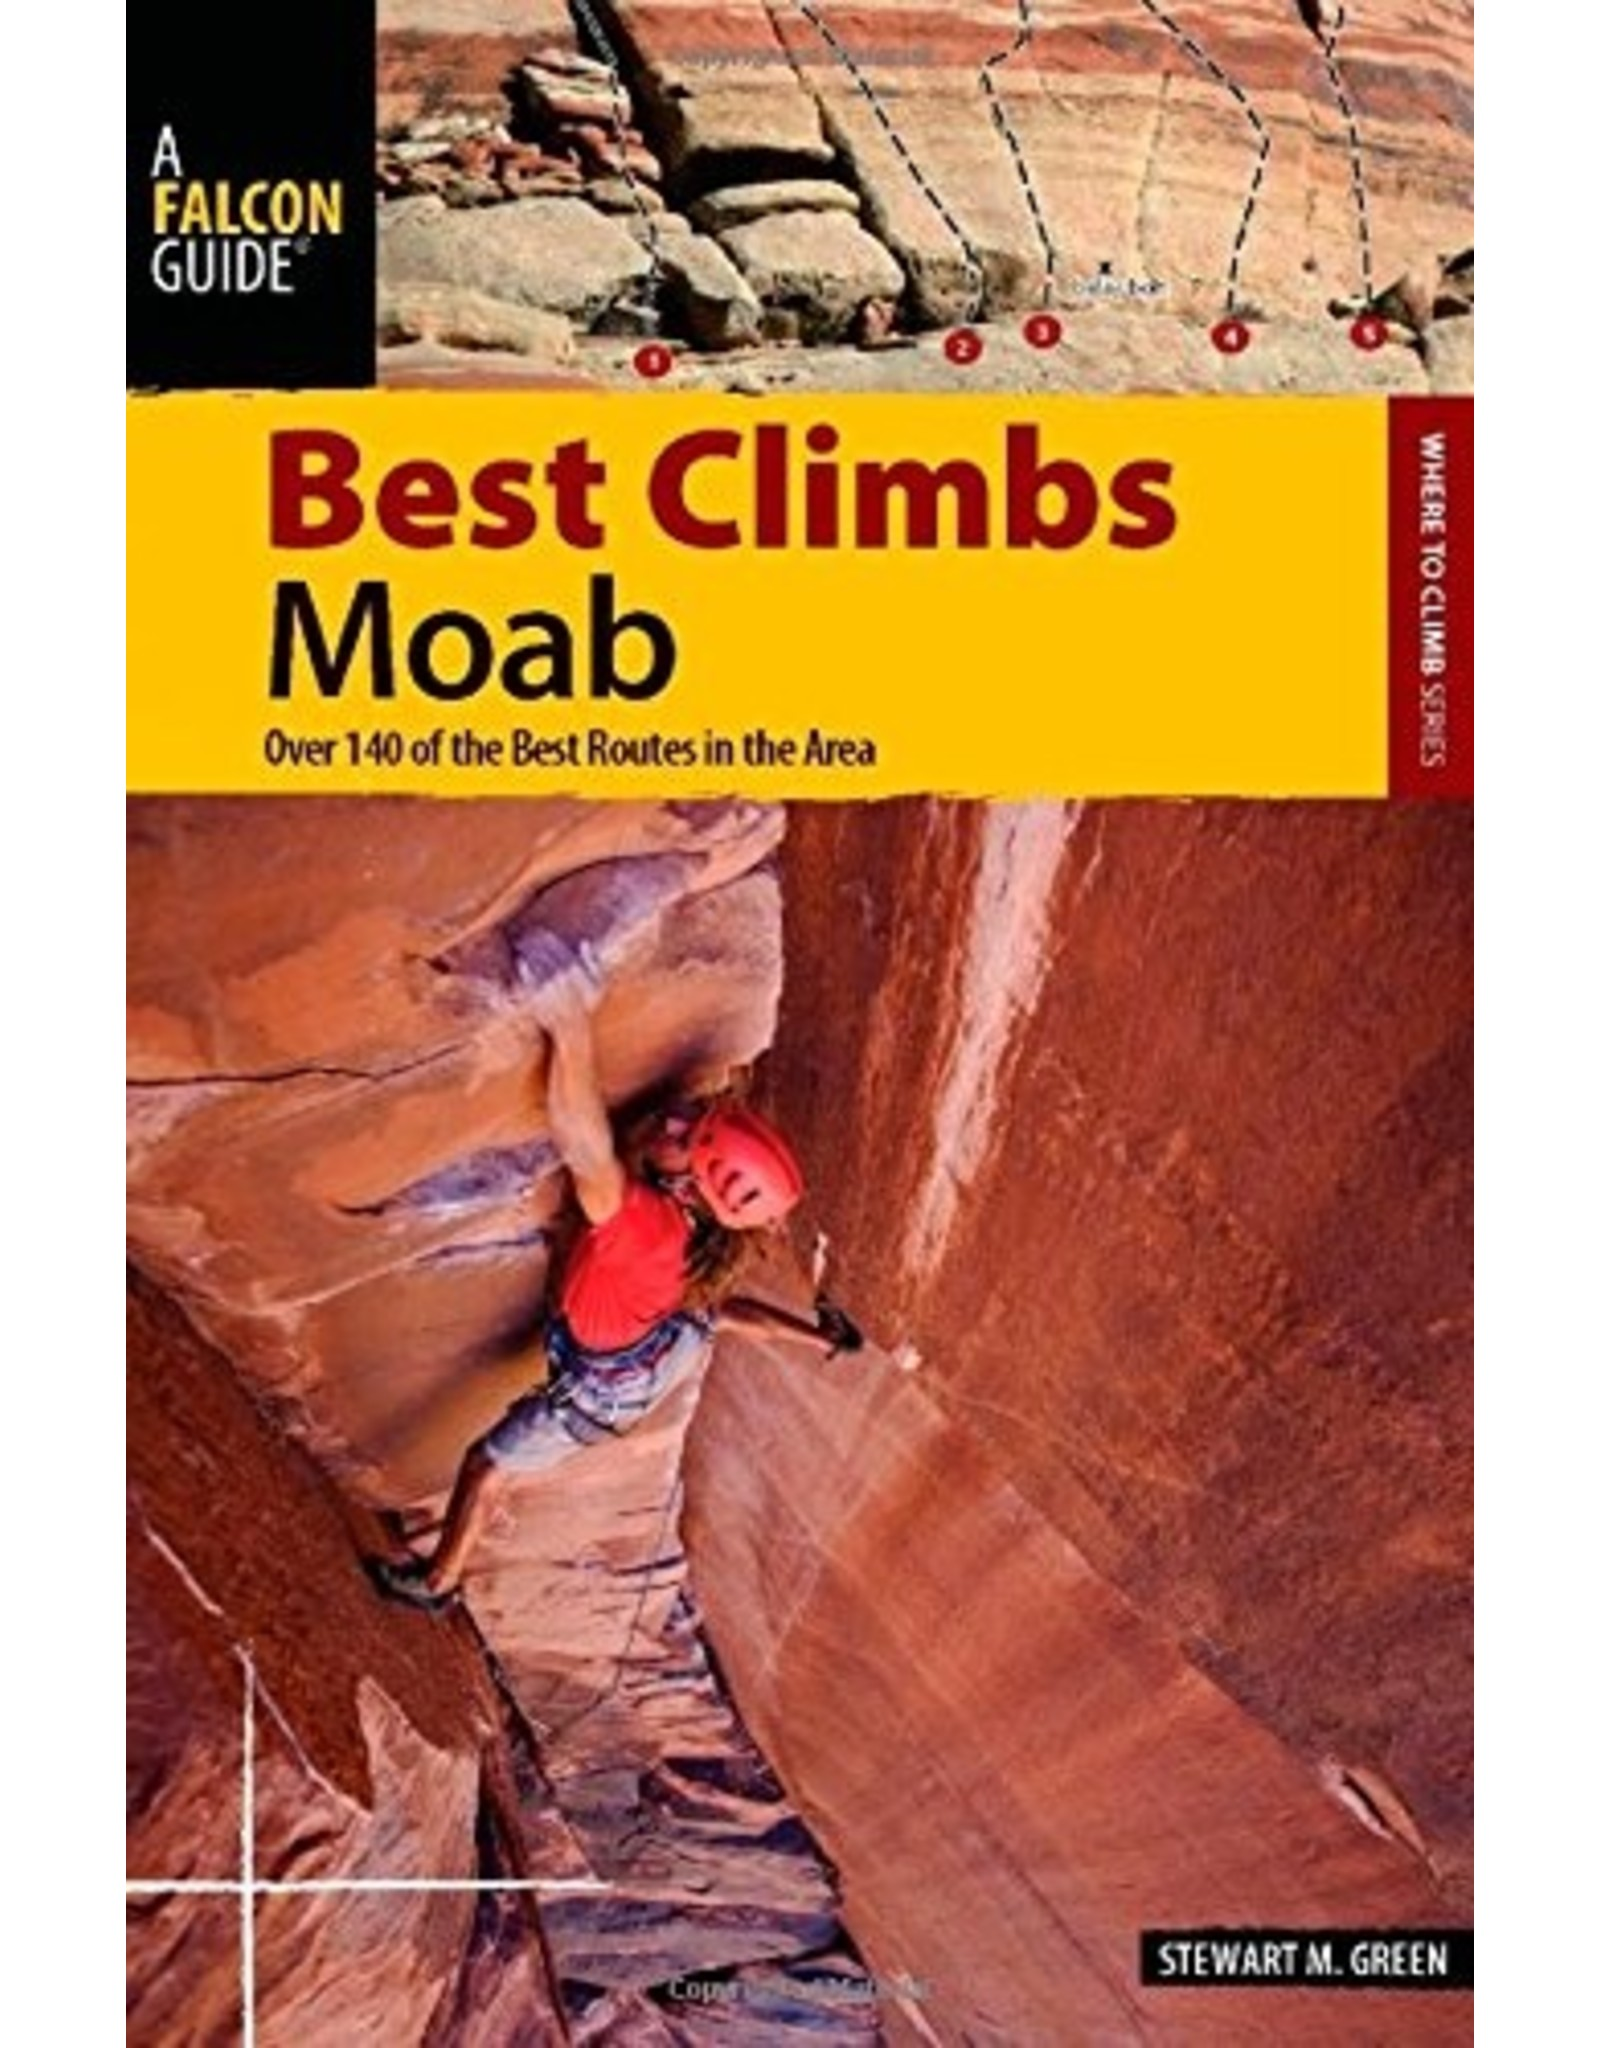 LIBERTY MOUNTAIN Best Climbs Moab: Over 140 of the Best Routes in the Area (Best Climbs Series) Paperback